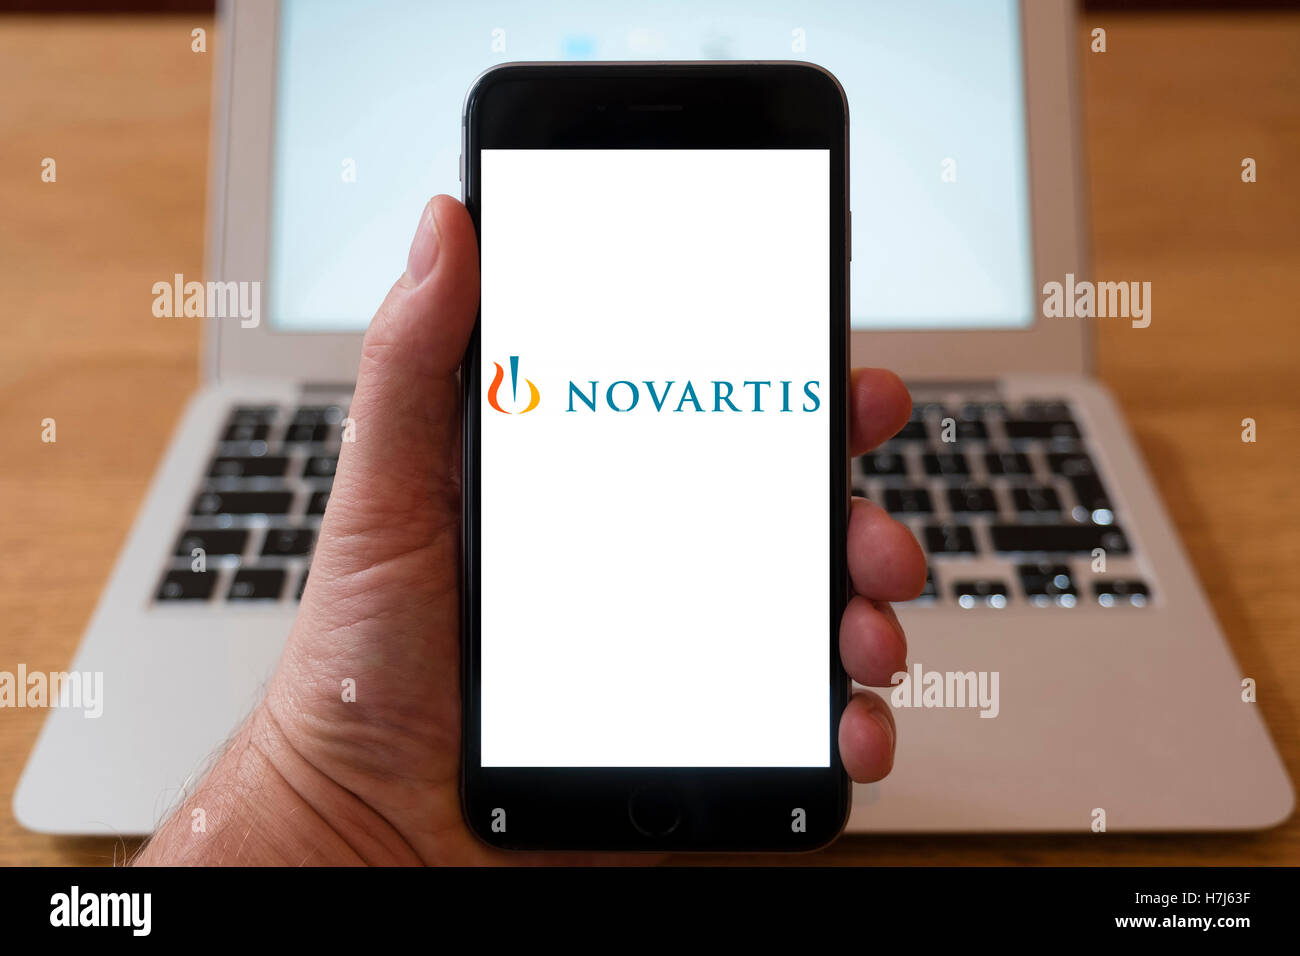 Using iPhone smart phone to display logo of Novartis; Swiss multinational pharmaceutical company Stock Photo